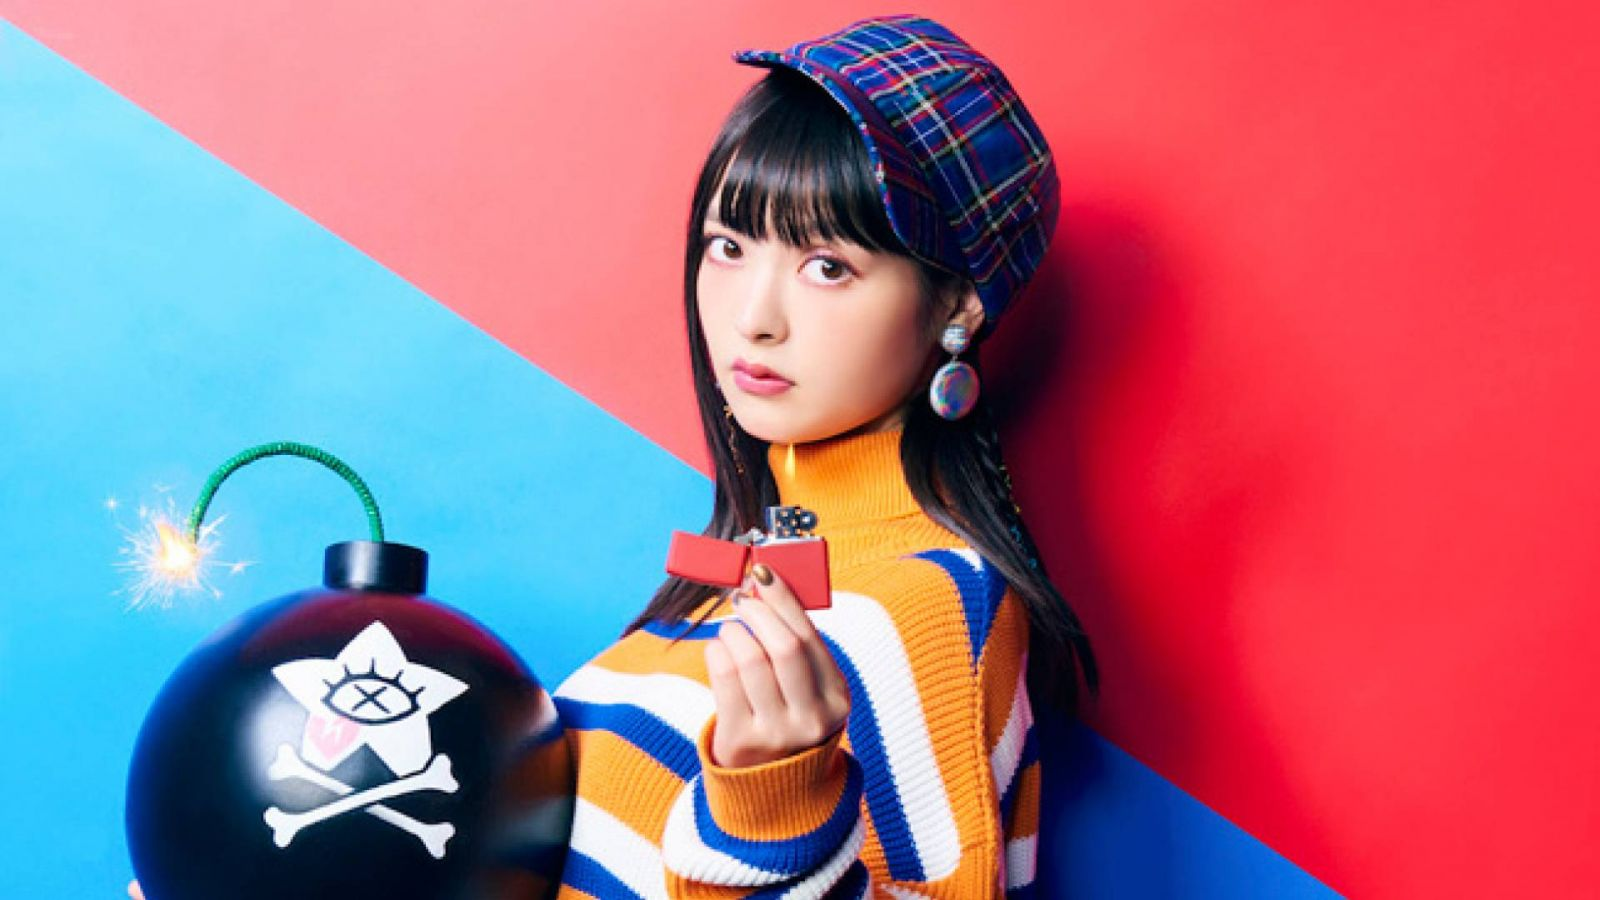 Uesaka Sumire Releases Back Catalogue Digitally in Europe © King Record Co., Ltd. All rights reserved.